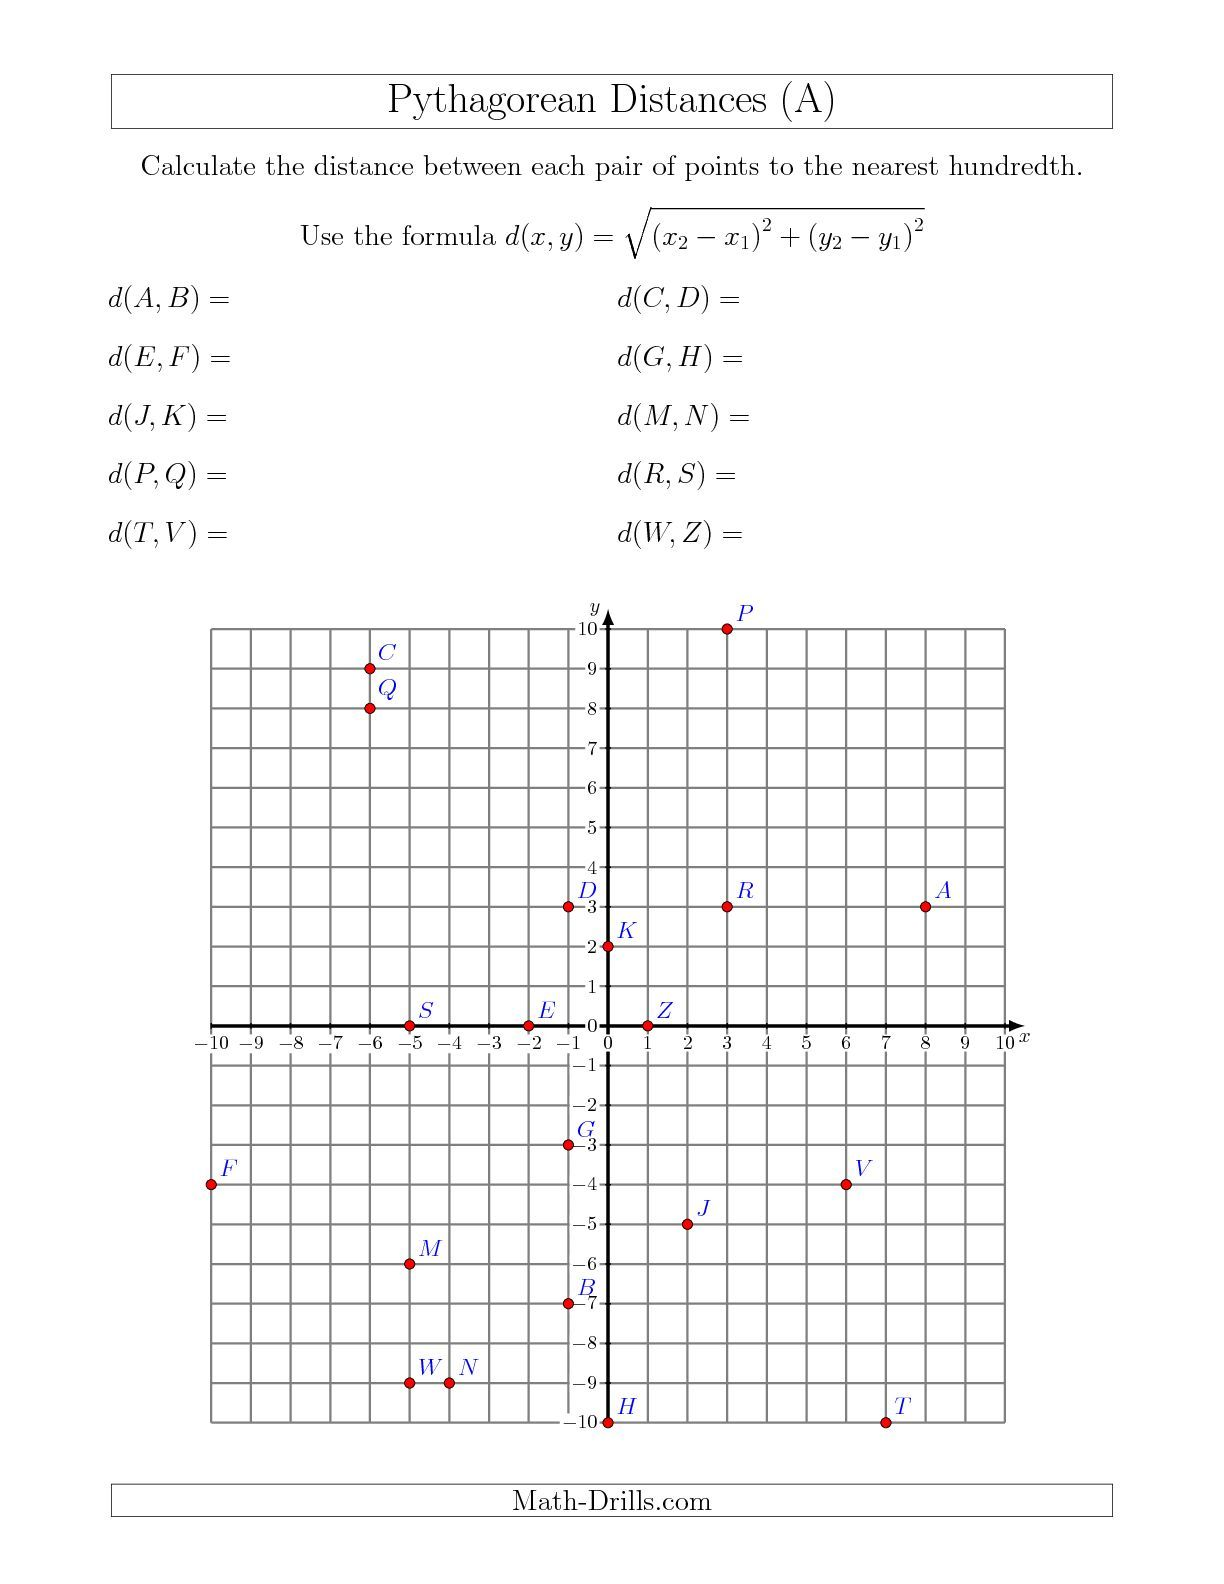 Calculating The Distance Between Two Points Using